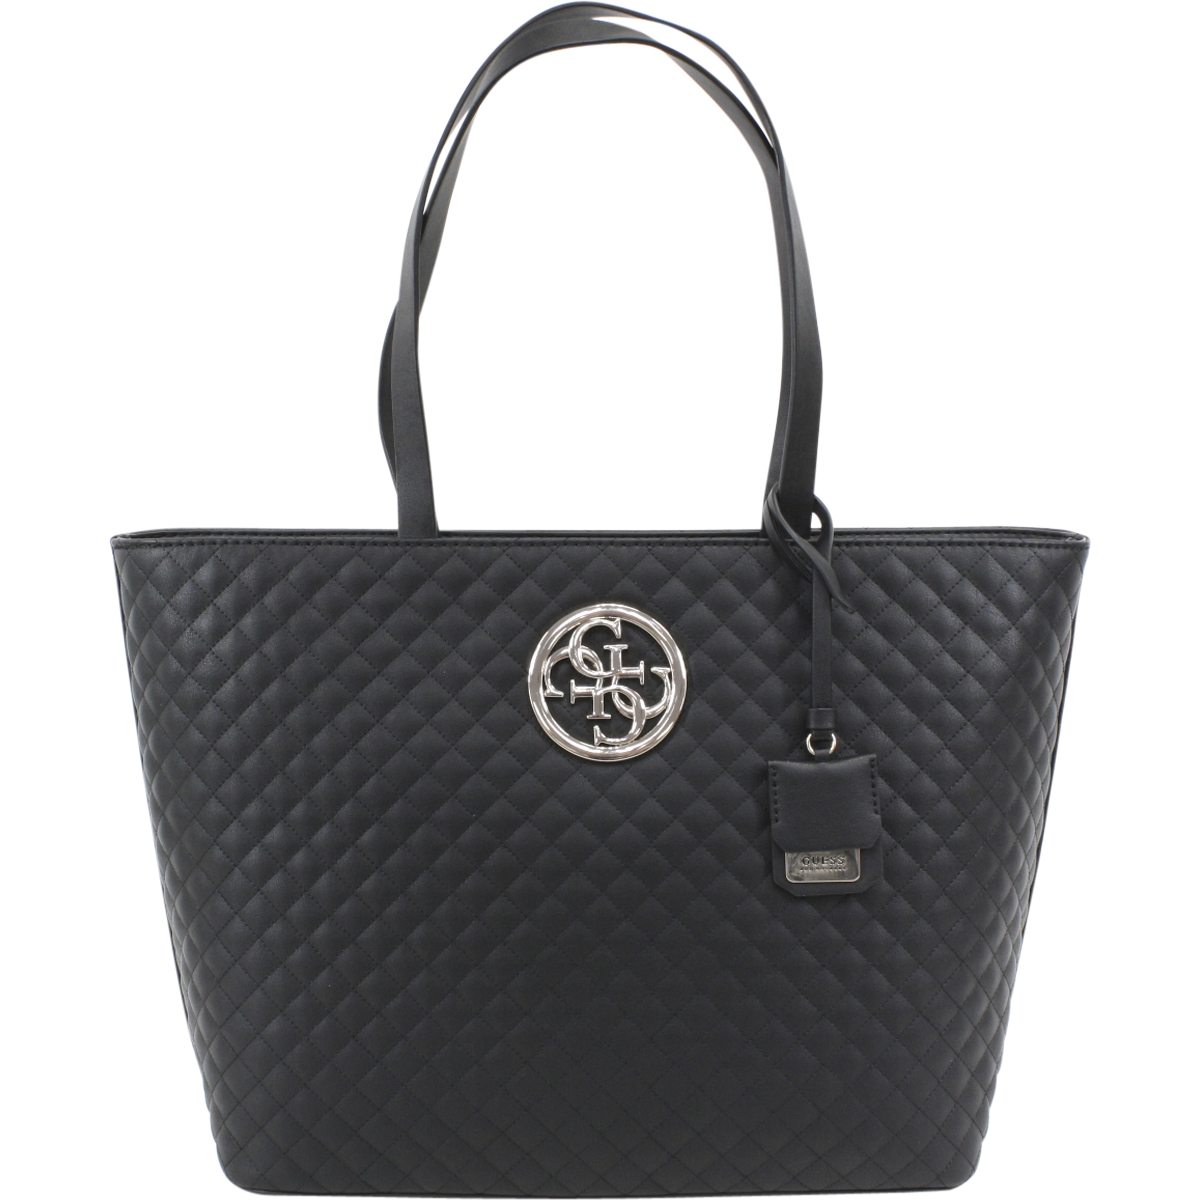 7bd2944496d3 Guess Women's G Lux Large Quilted Tote Handbag by Guess